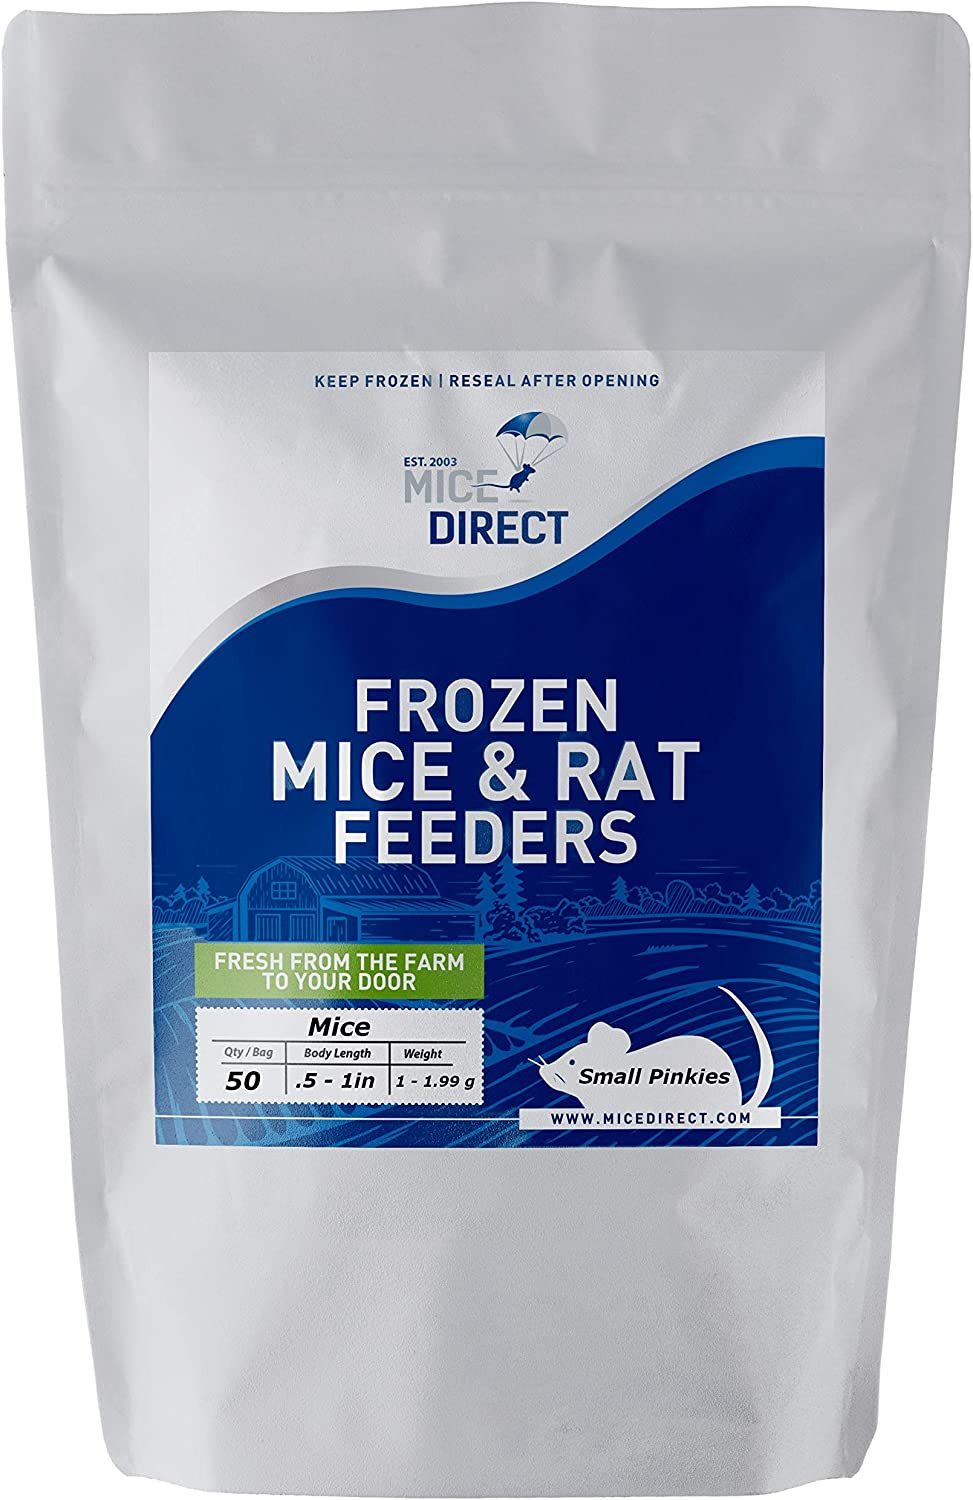 MiceDirect: Small Pinkie Mice: 50 Pack of Frozen Small Pinkie Feeder Mice: - Food for Corn Snakes, Ball Pythons, Lizards and Other Pet Reptiles - Freshest Snake Feed Supplies